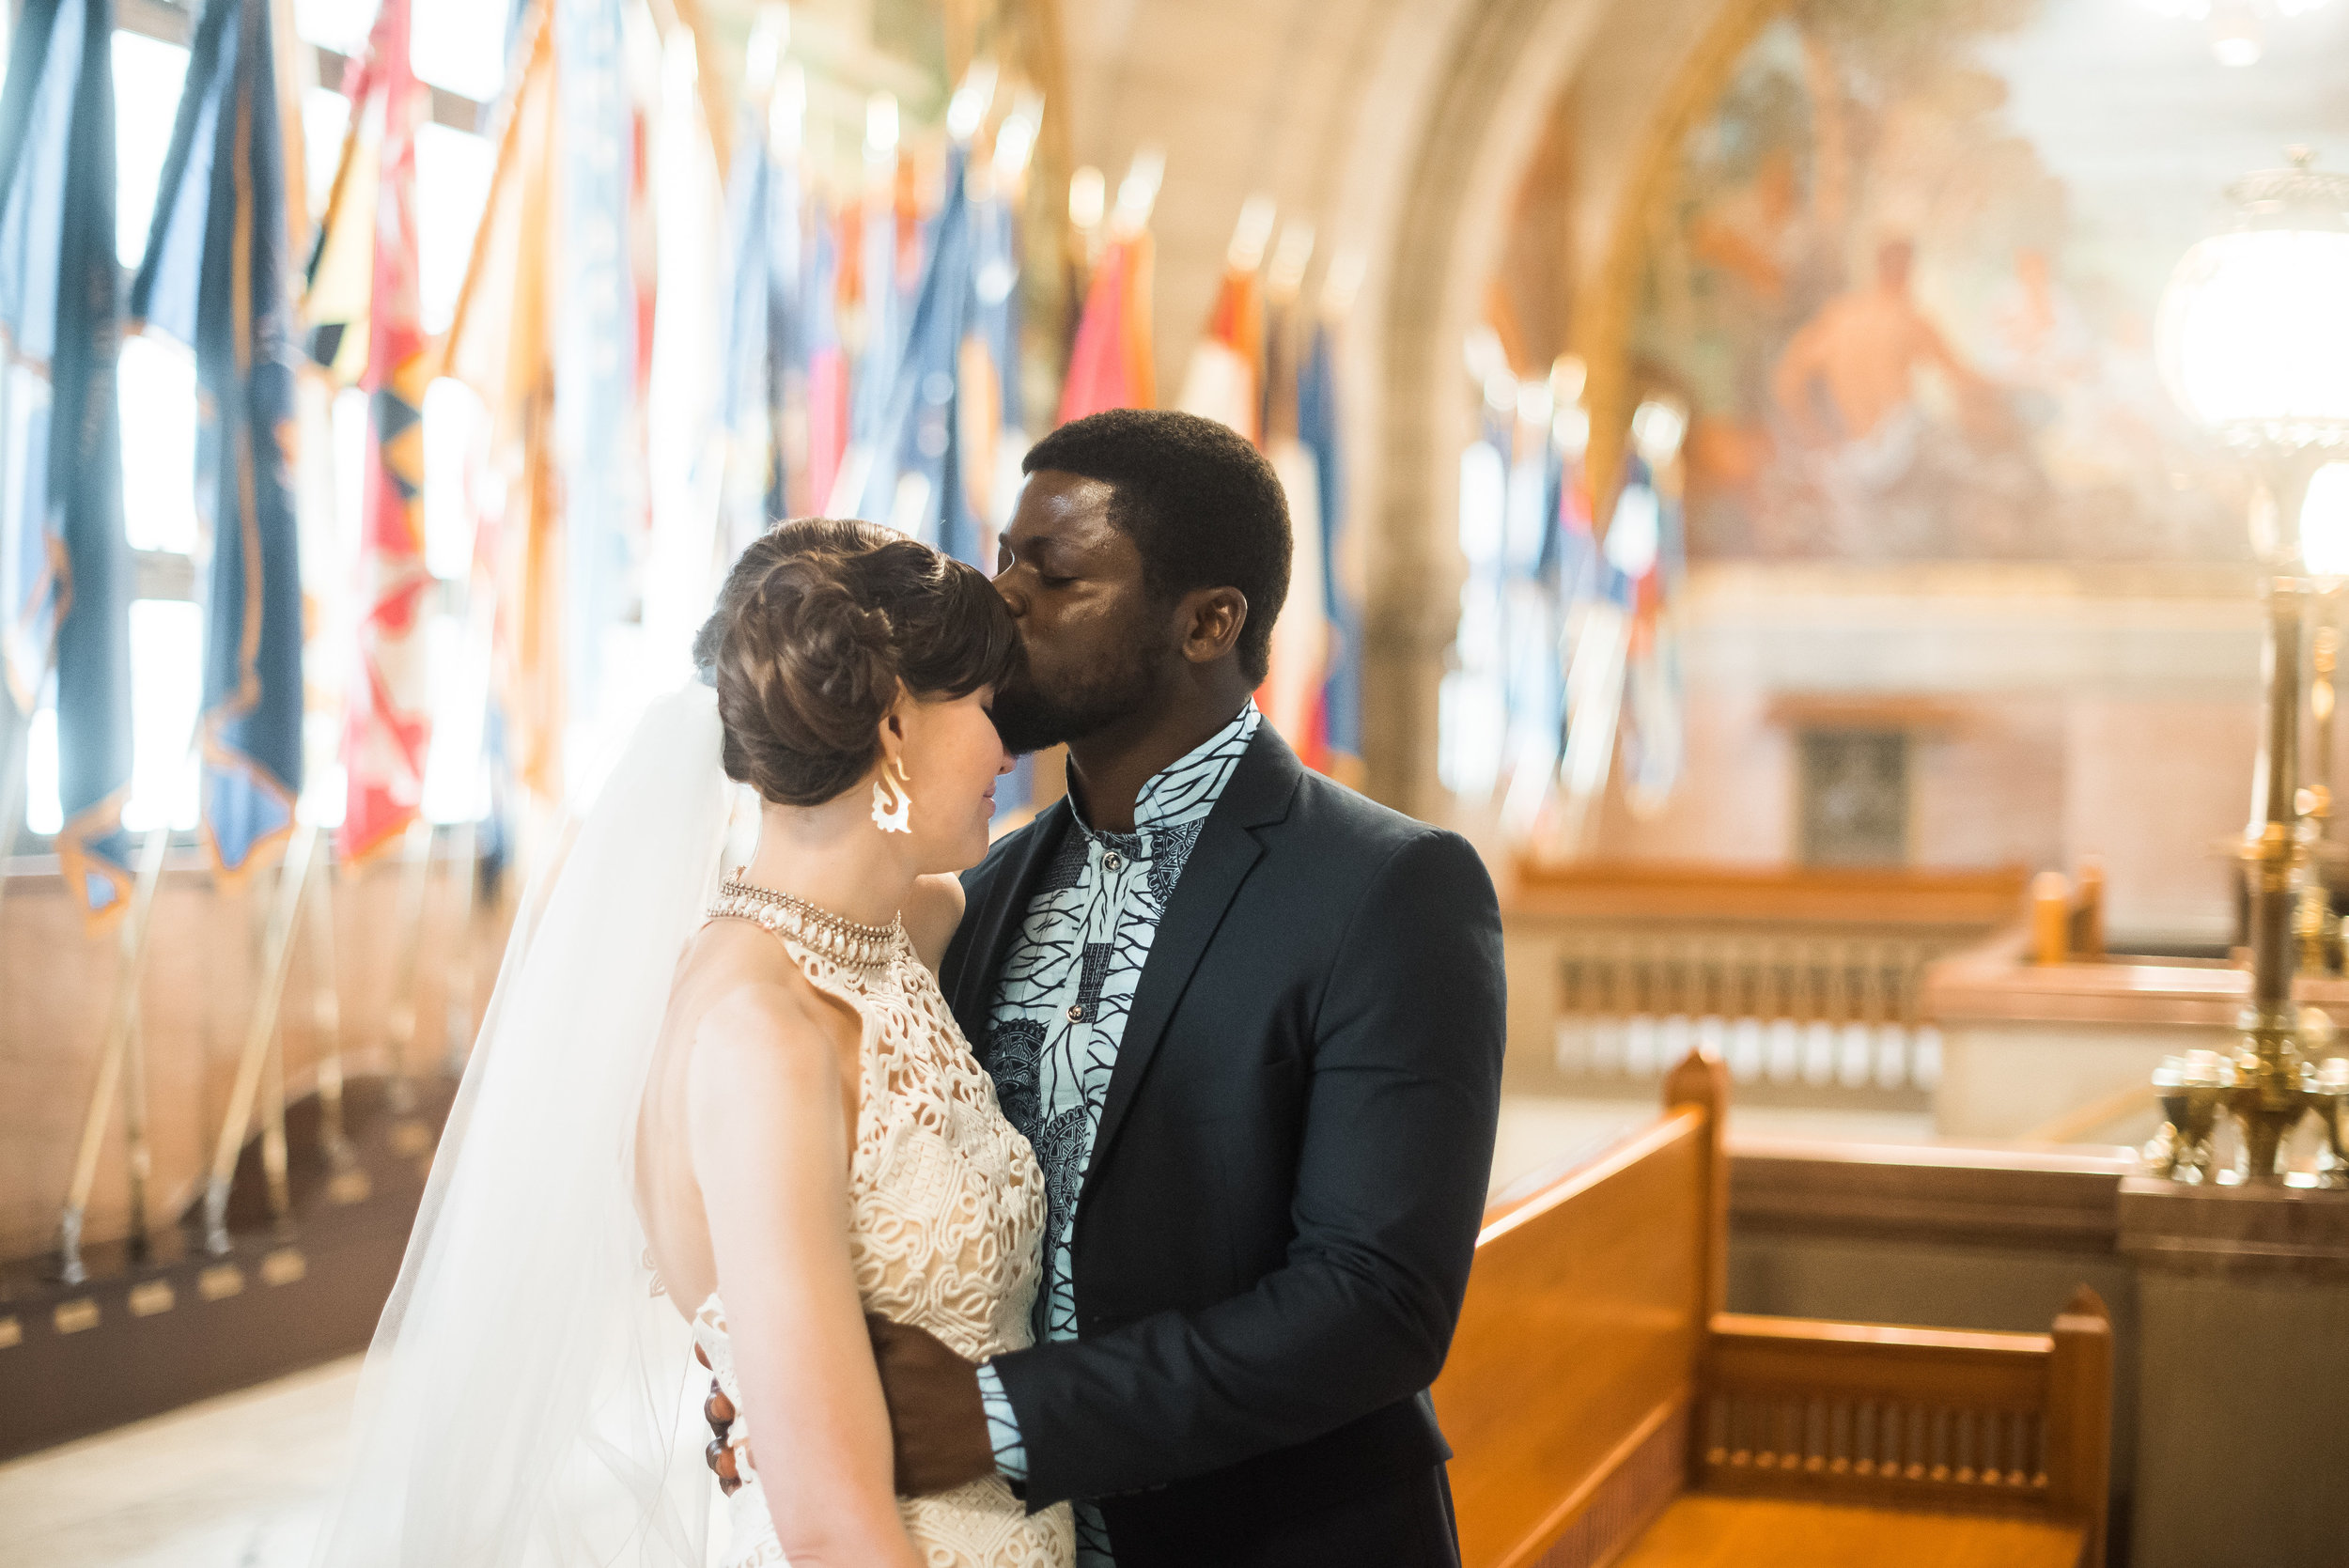 pittsburgh-wedding-photographer-elopement-courthousewedding-downtown-city0311.jpg